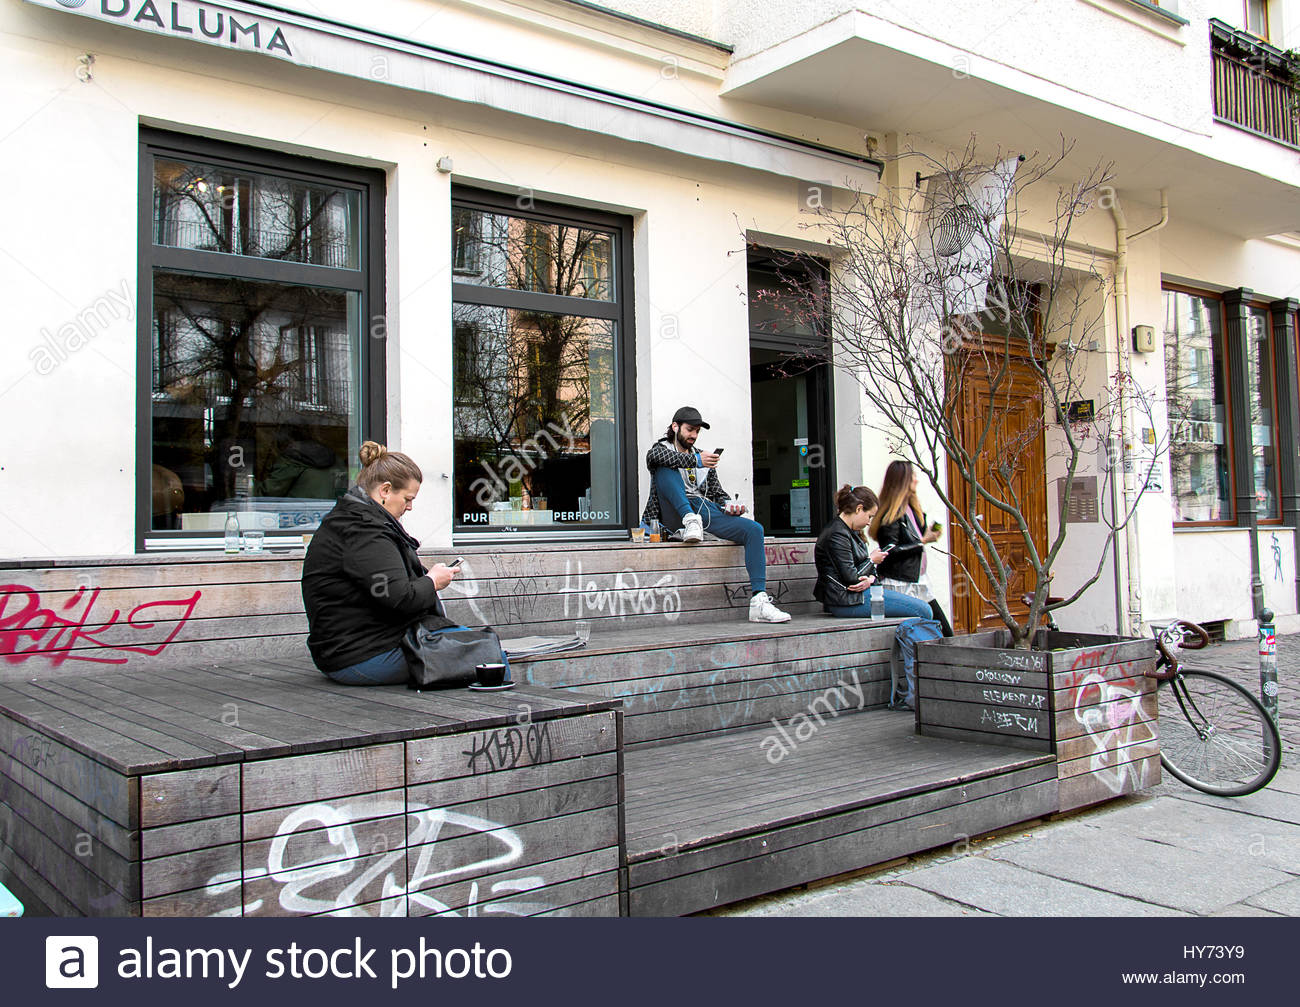 Hipster berlin coffee shop trendy young people coffeehouse texting smartphone looking at cell phone using iphone user